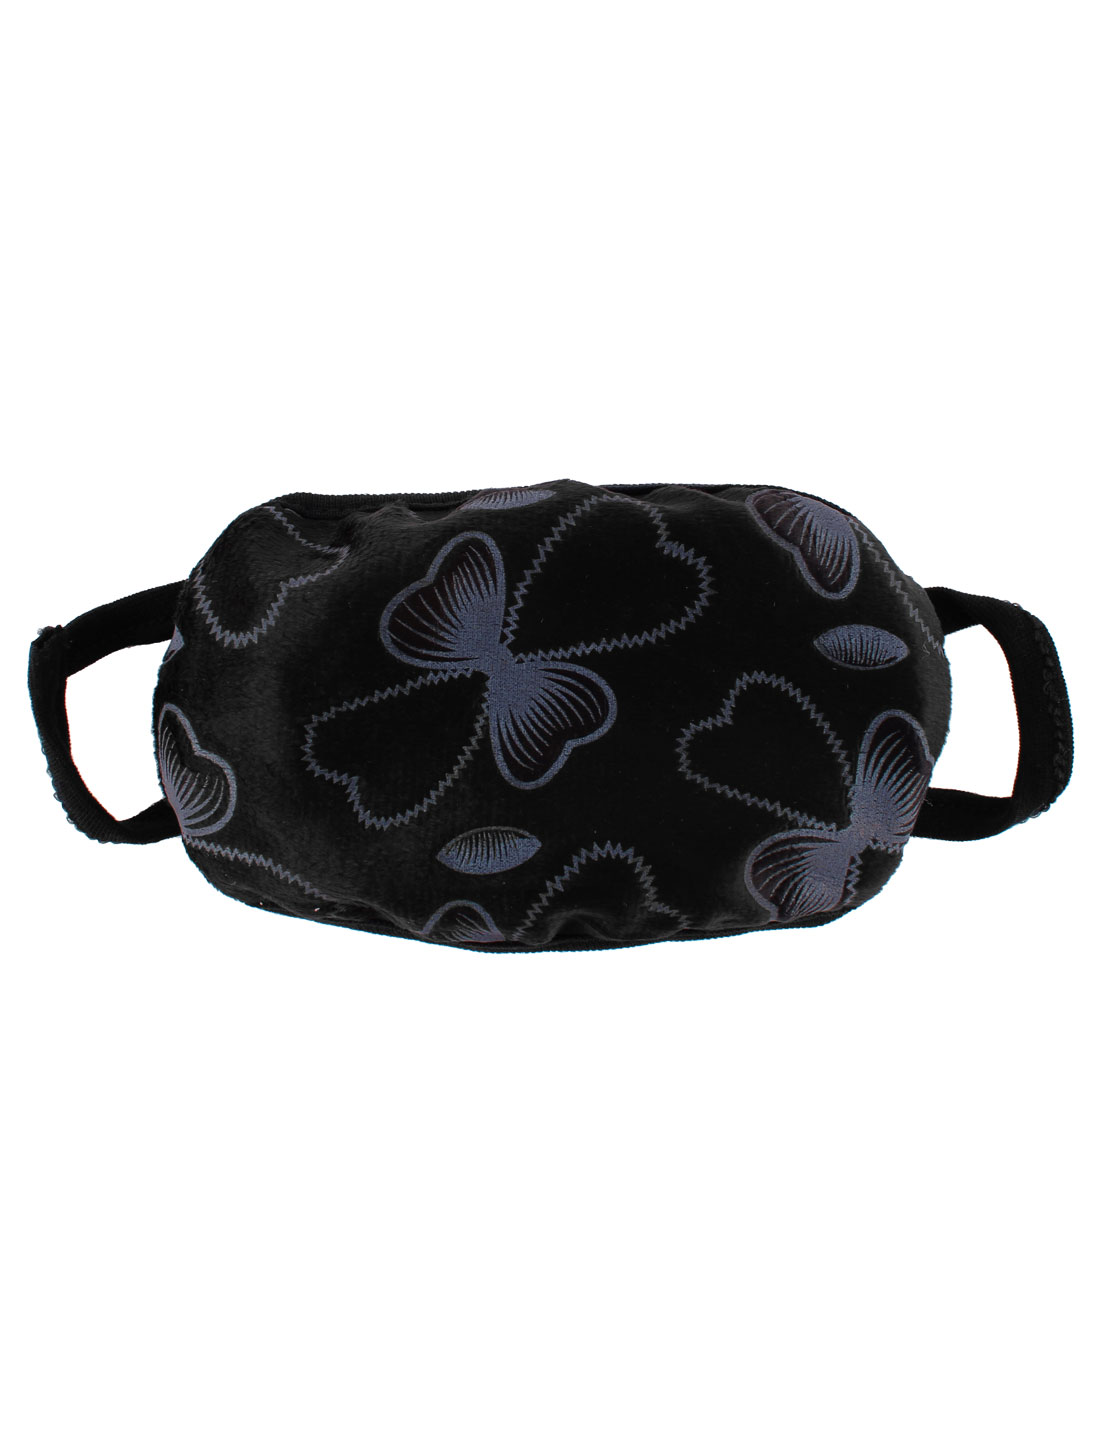 Woman Bowknot Pattern Face Nose Mouth Mask Cover Respirator Protector Black